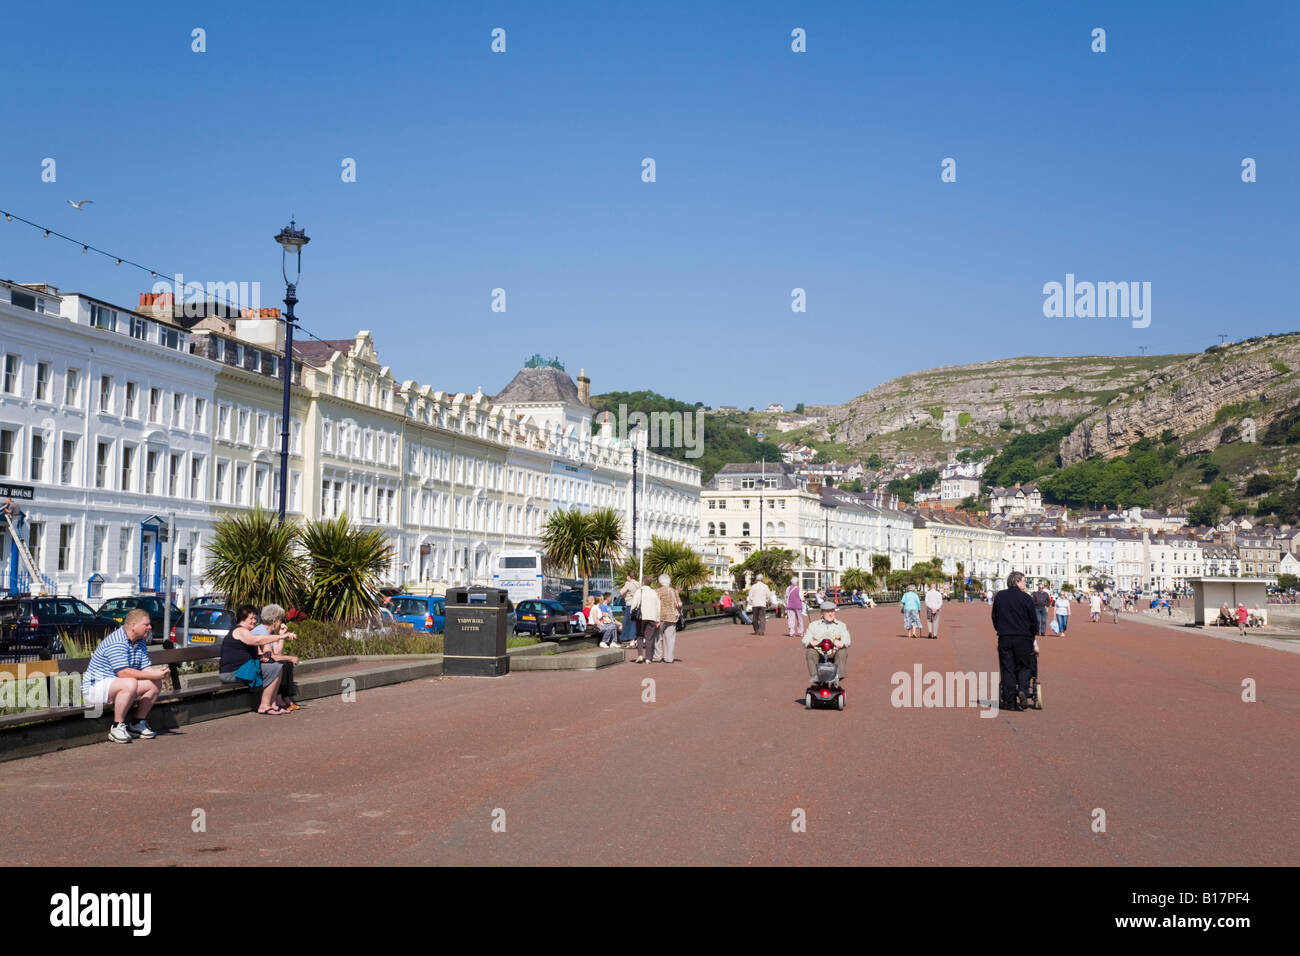 Llandudno North Wales UK. North Parade promenade and hotels in elegant 19th century Victorian buildings on seafront - Stock Image